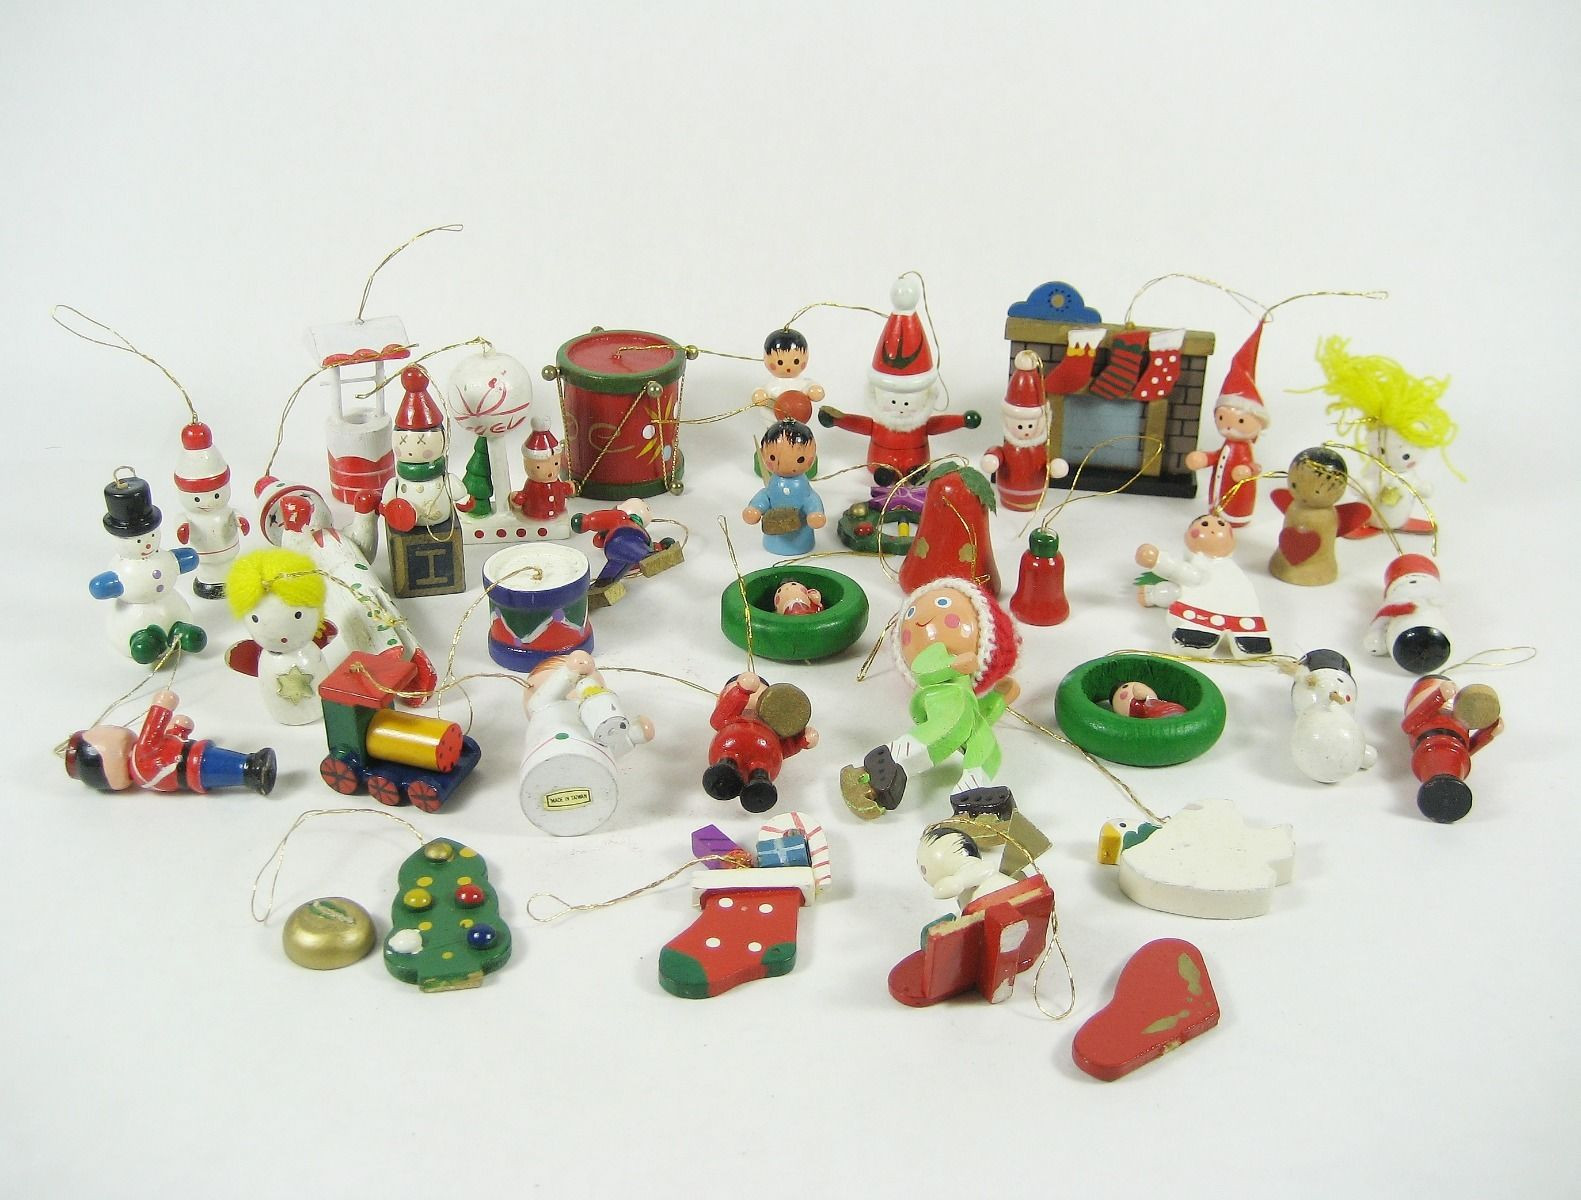 Mini Christmas ornaments Lovely Mini Wooden Christmas Tree Decorations Of Amazing 45 Pictures Mini Christmas ornaments